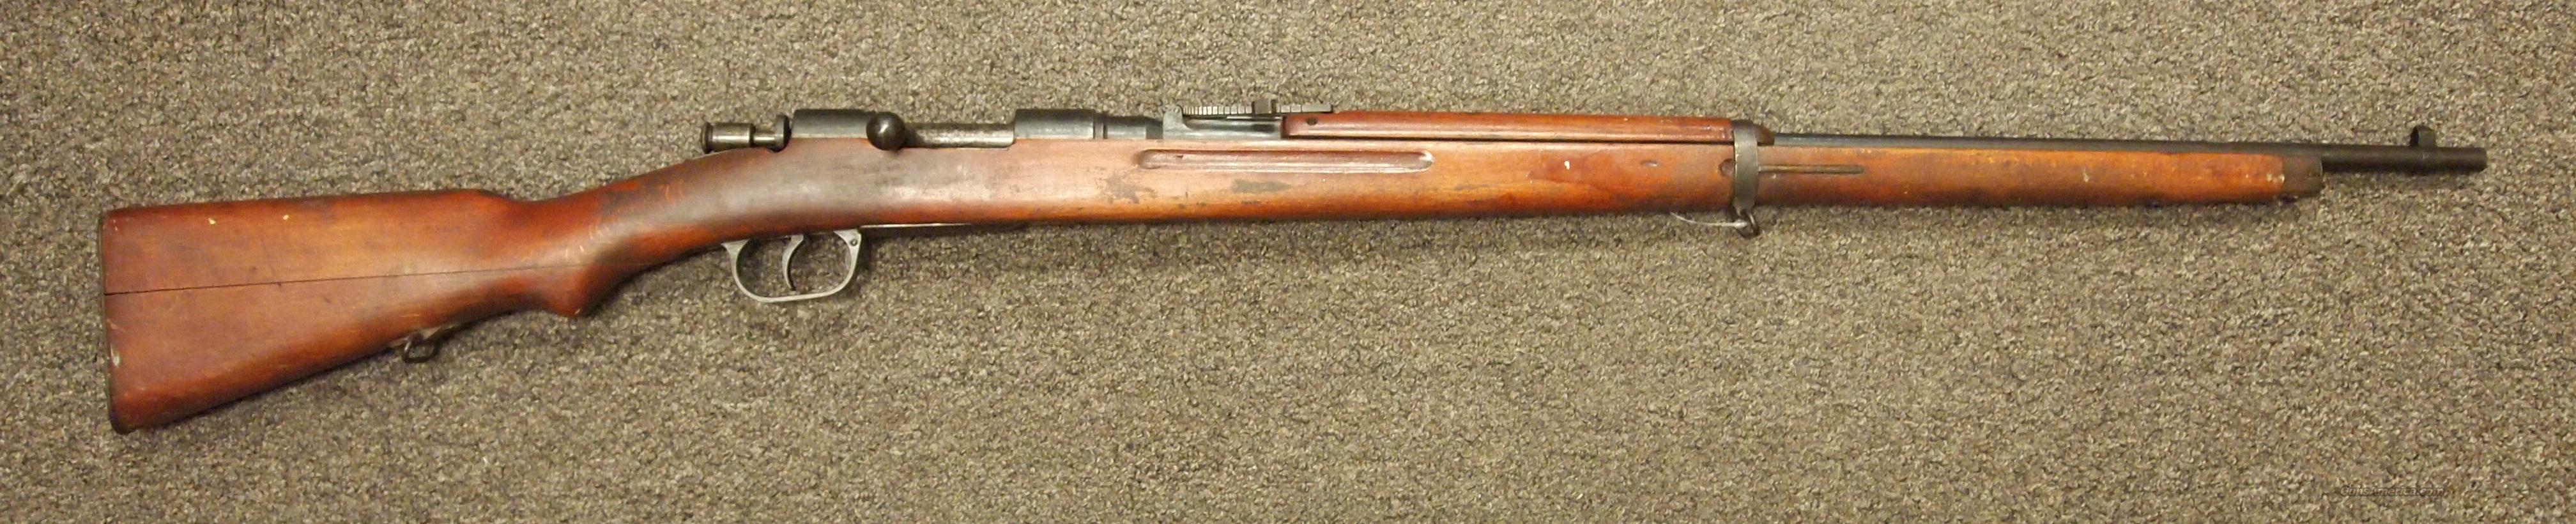 Japanese Carcano Arisaka Type 1 6.5JAP  Guns > Rifles > Military Misc. Rifles Non-US > Other